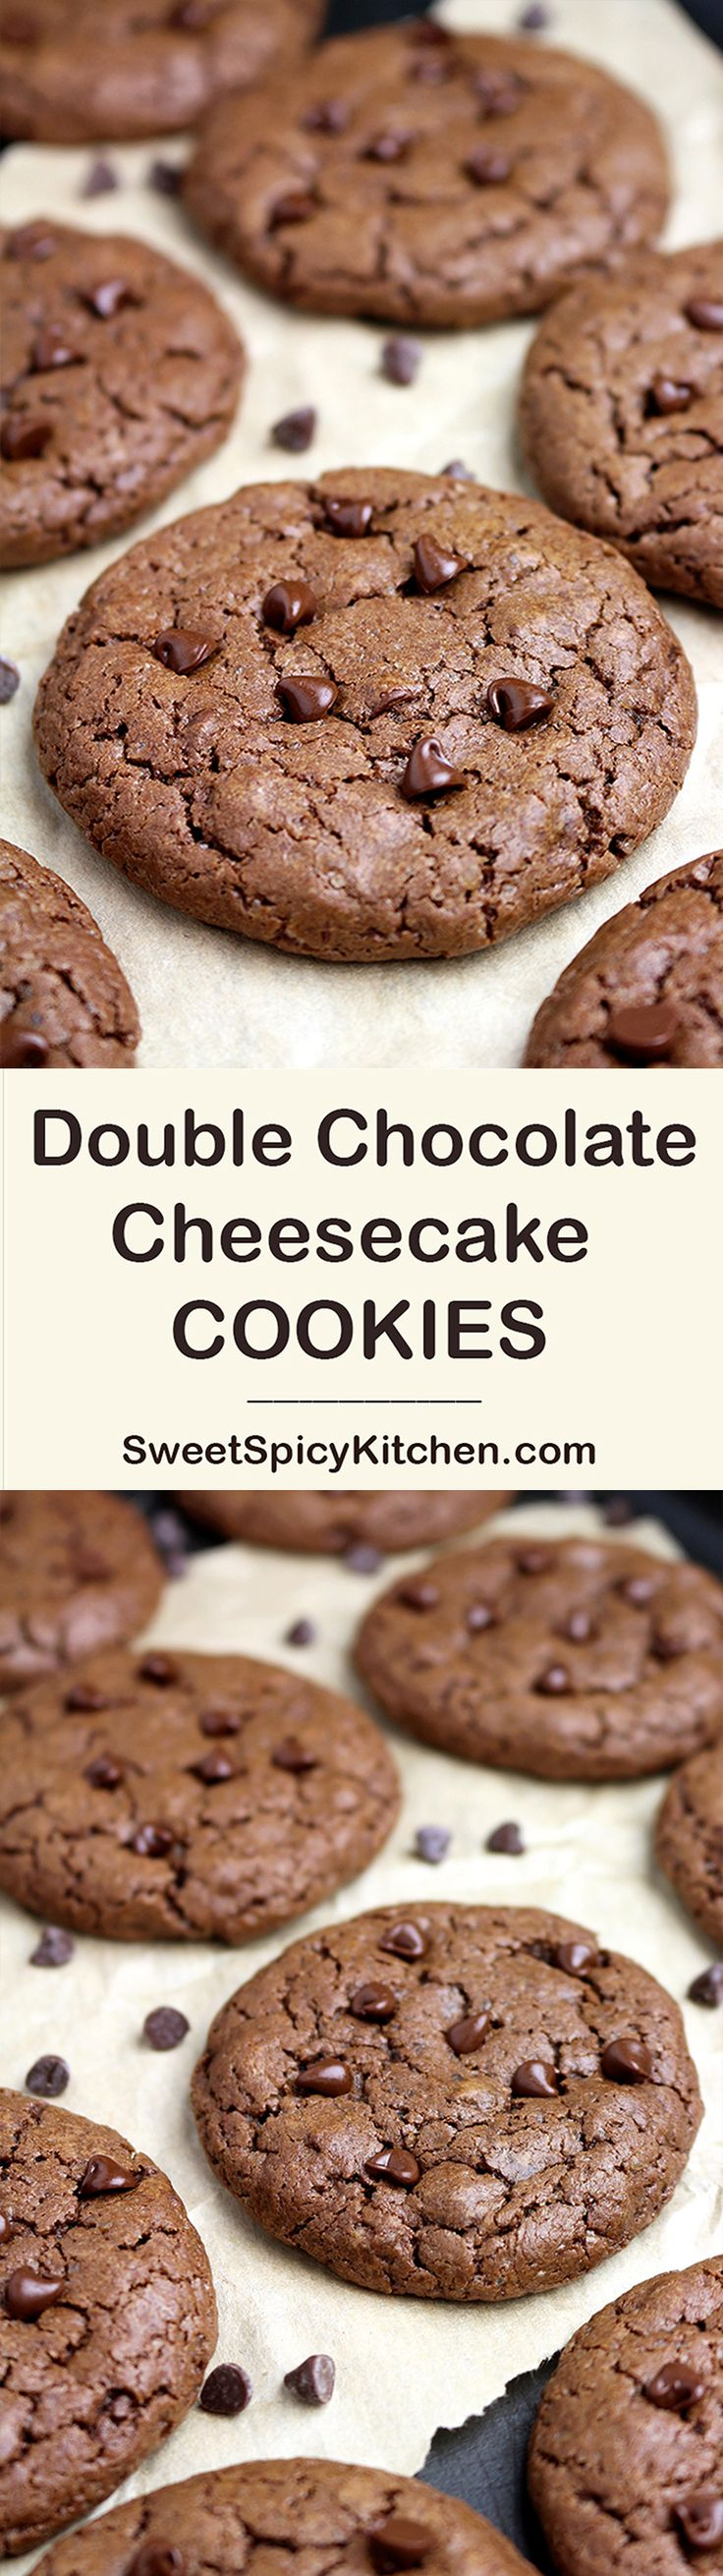 Best 25+ Melting chocolate ideas on Pinterest | Chocolate dipped ...